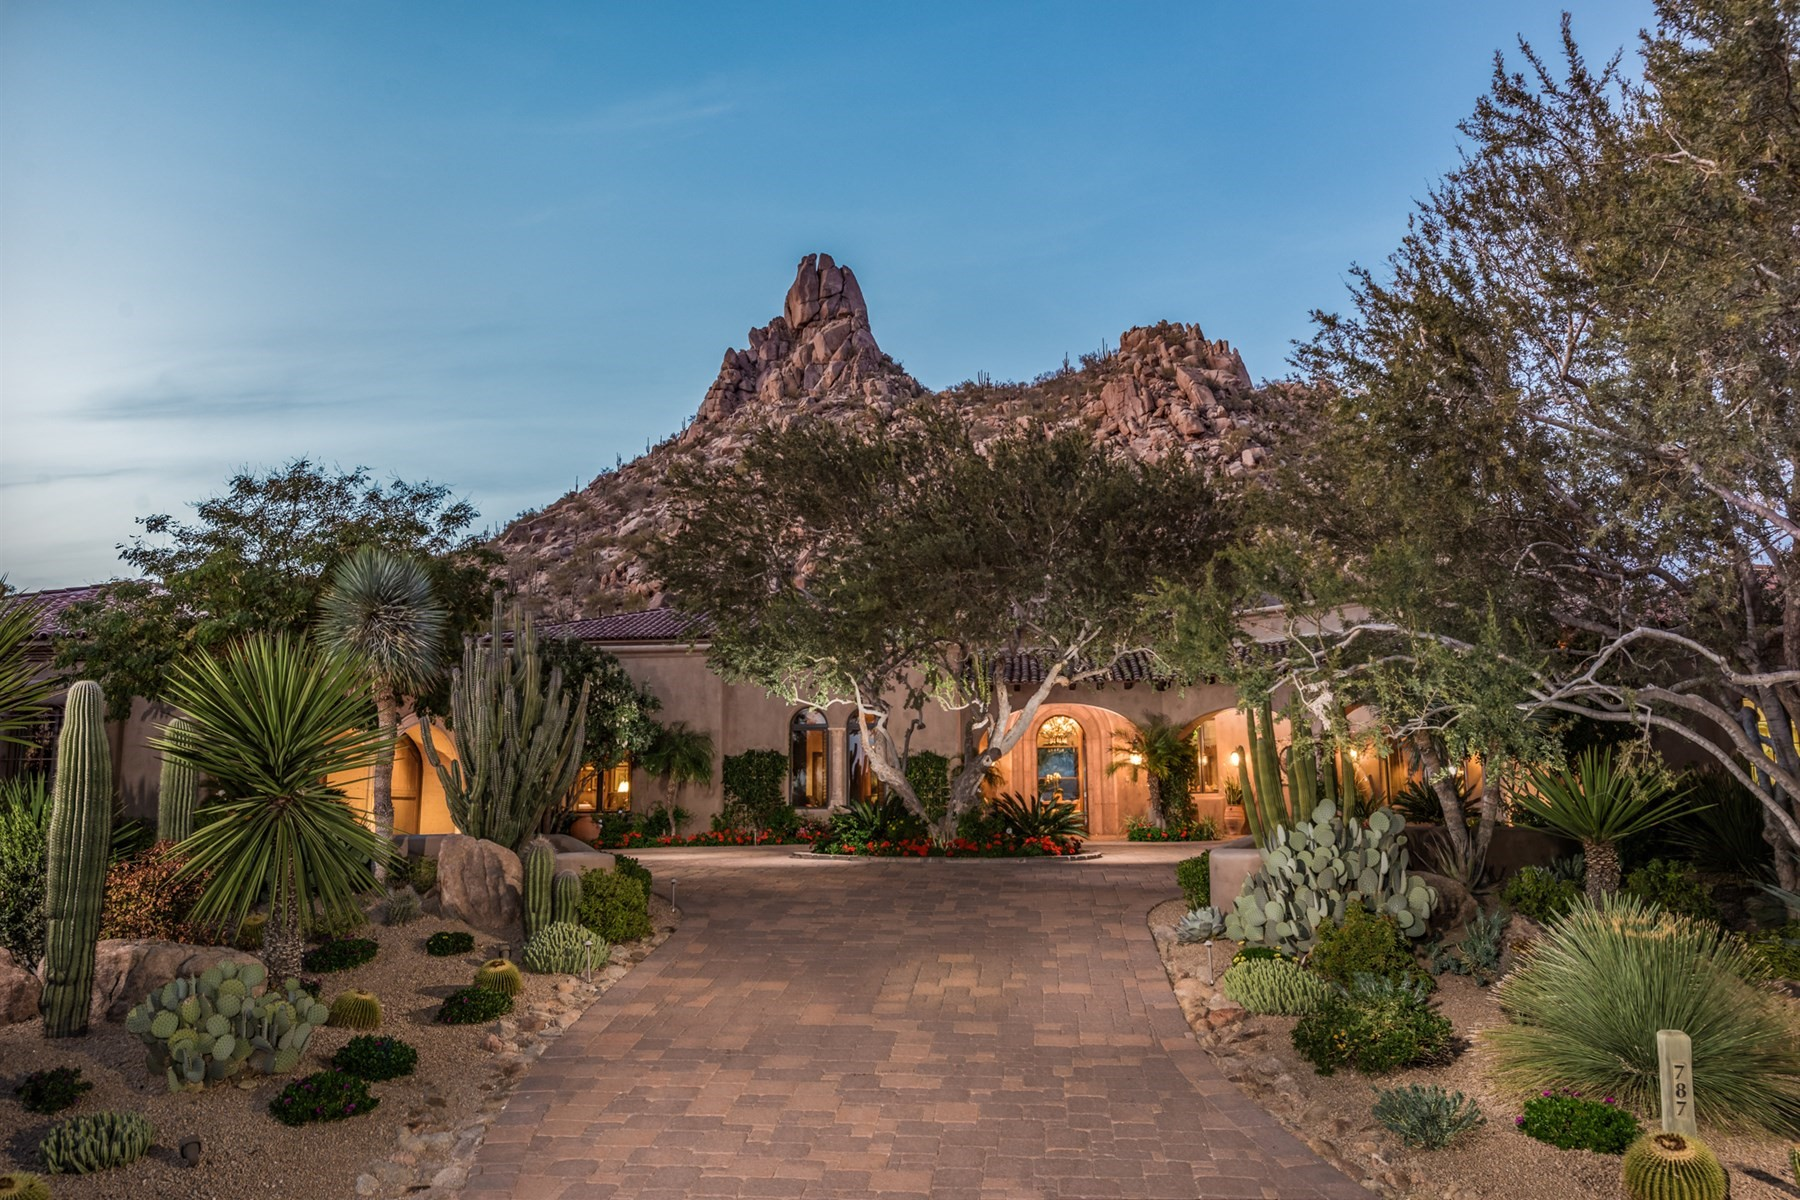 獨棟家庭住宅 為 出售 在 Spectacular home nestled at the base of Pinnacle Peak 10040 E HAPPY VALLEY RD 787, Scottsdale, 亞利桑那州, 85255 美國